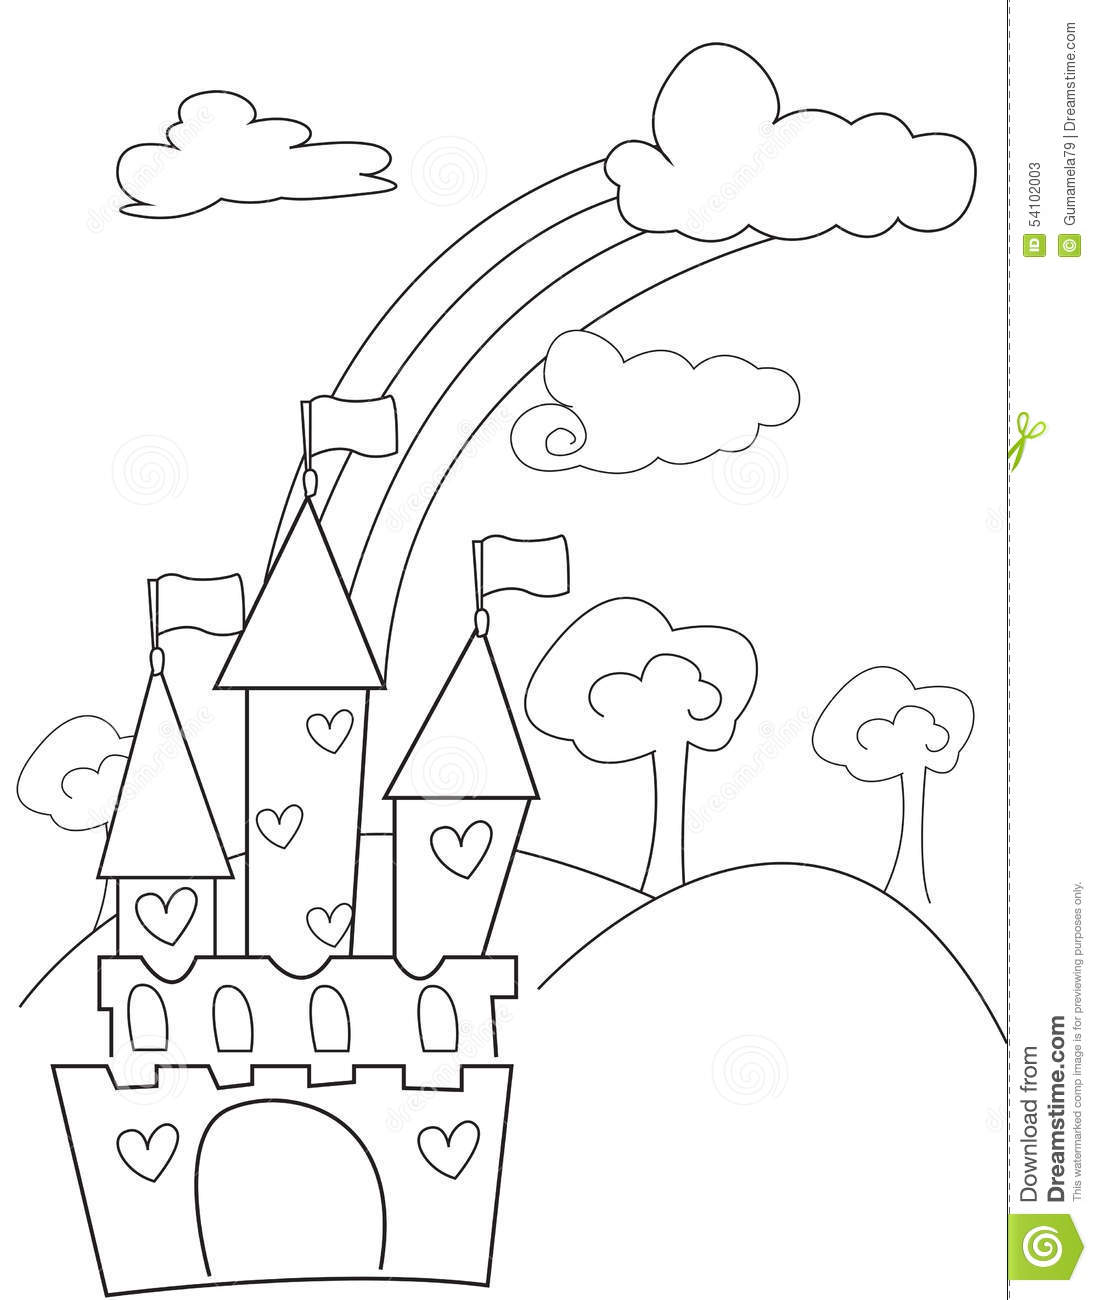 castle with hearts coloring page stock illustration image 54102003